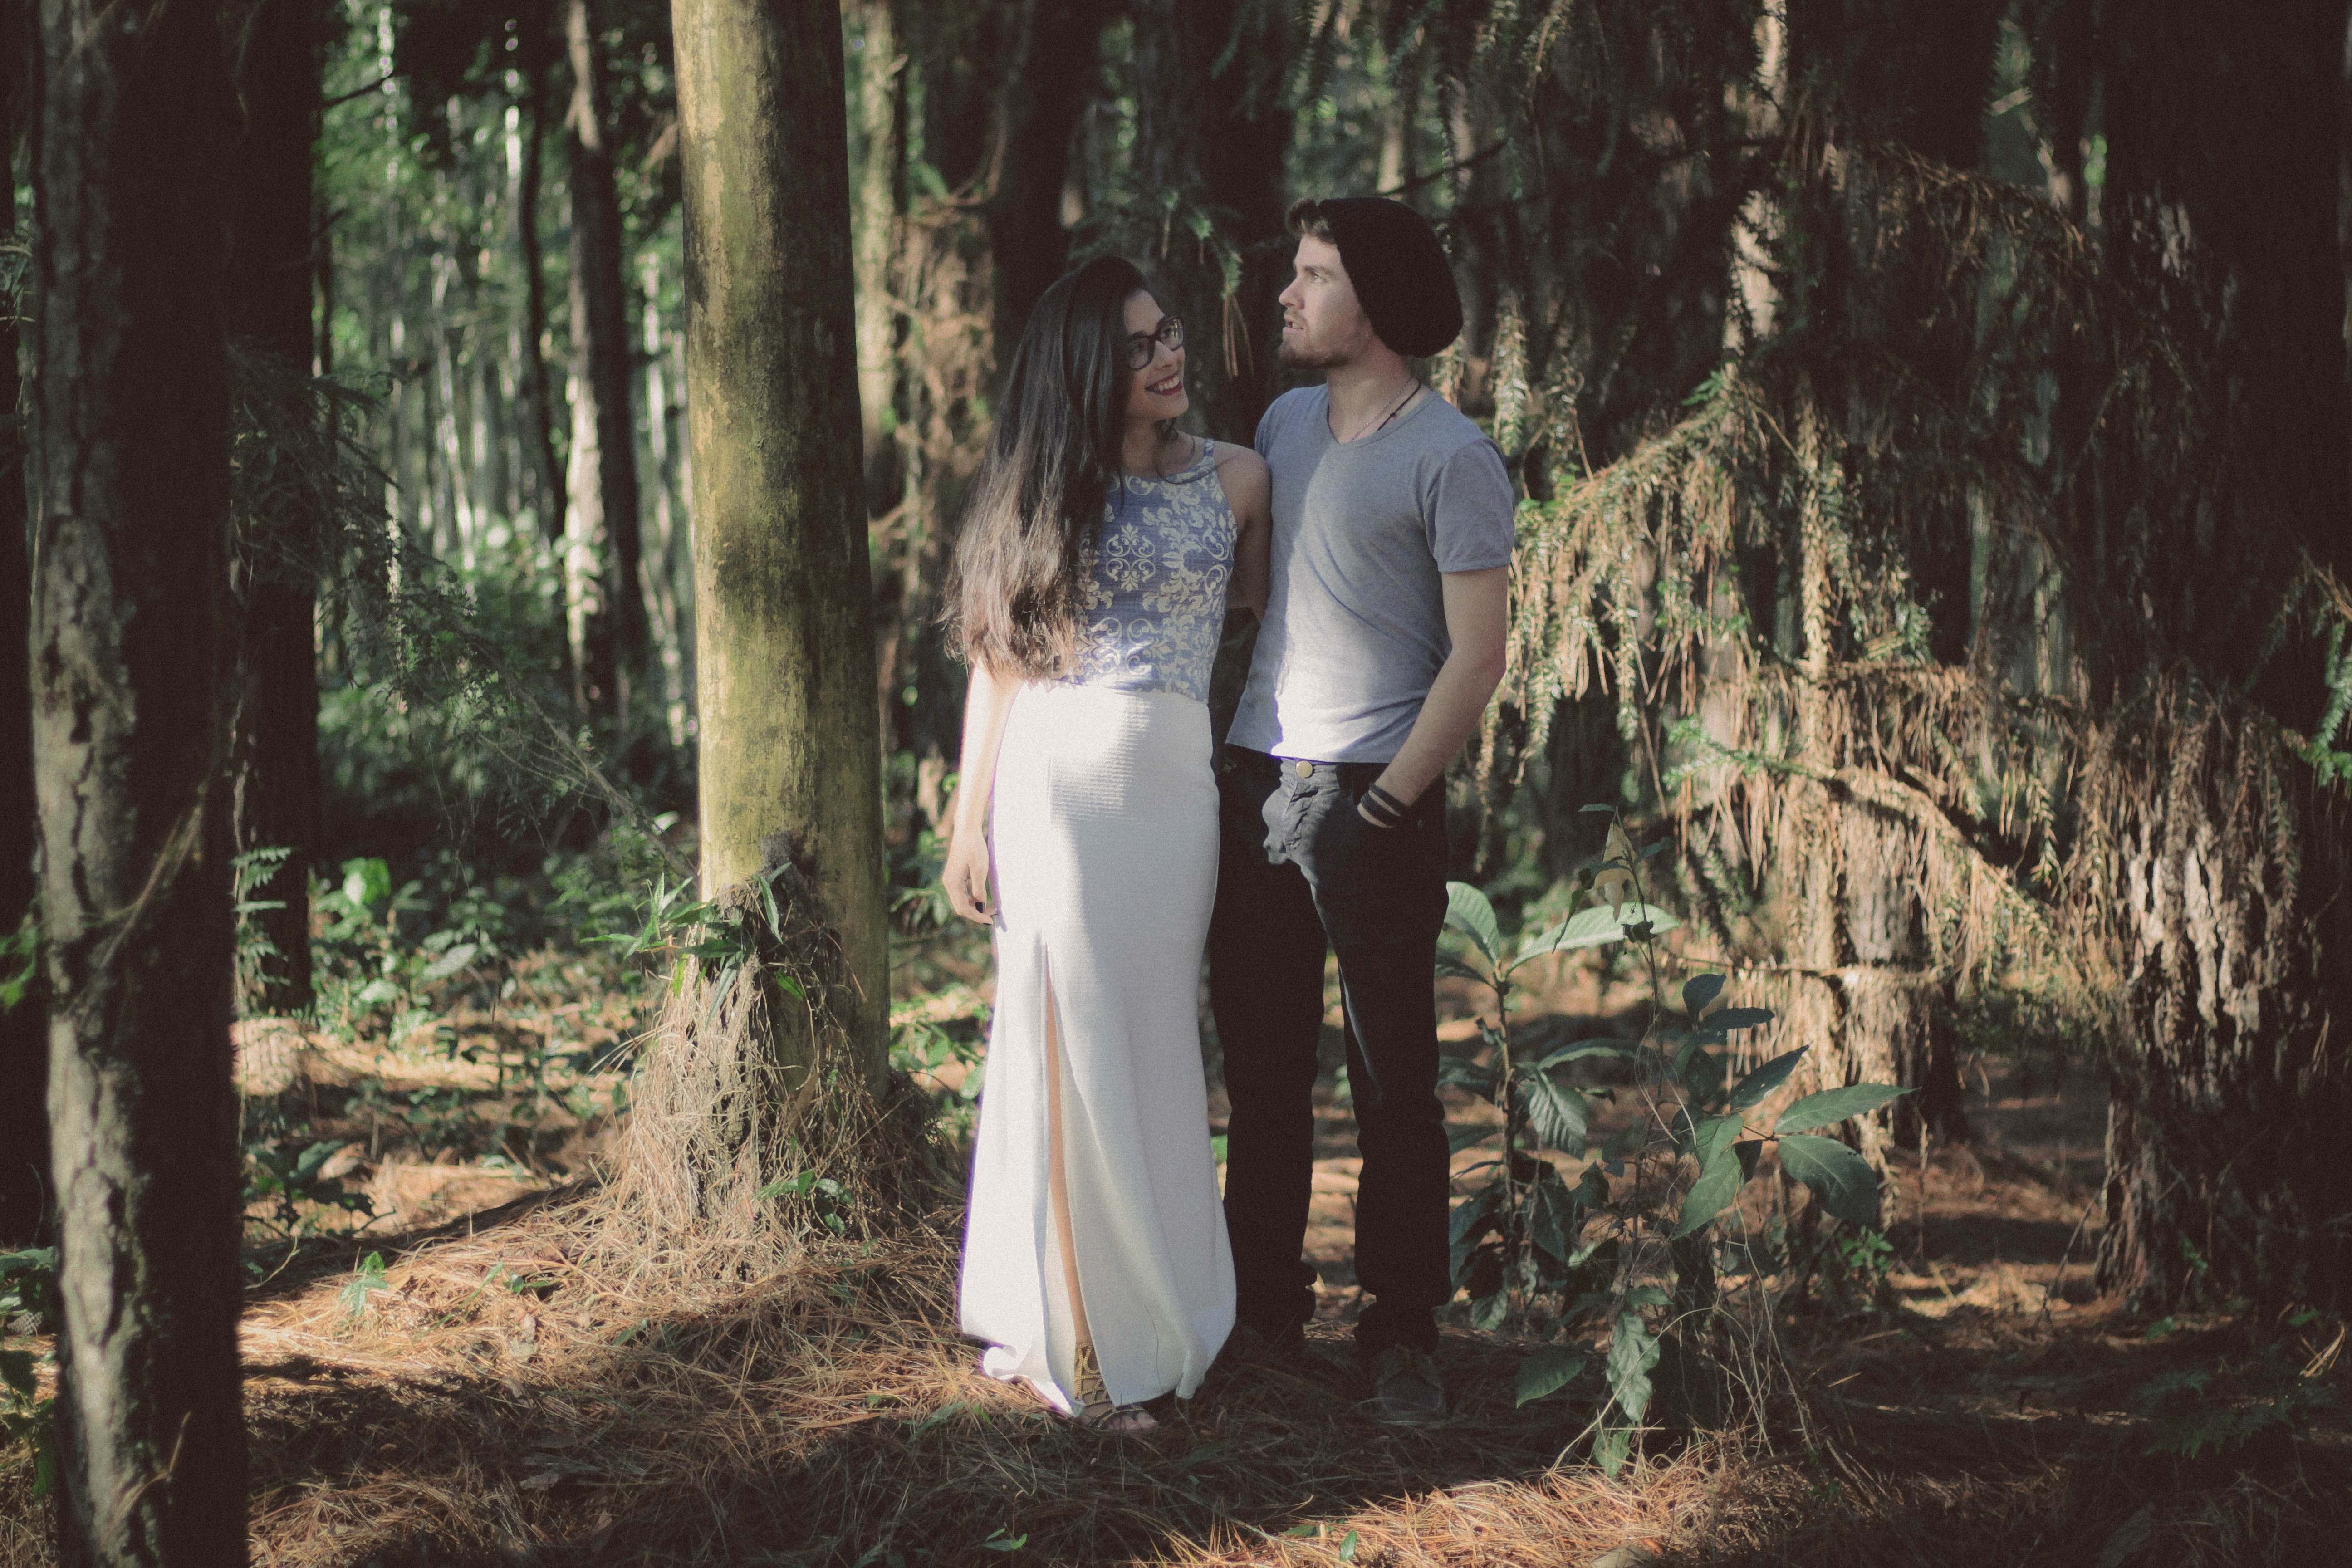 man and woman standing together surrounded by green trees and plants during daytime